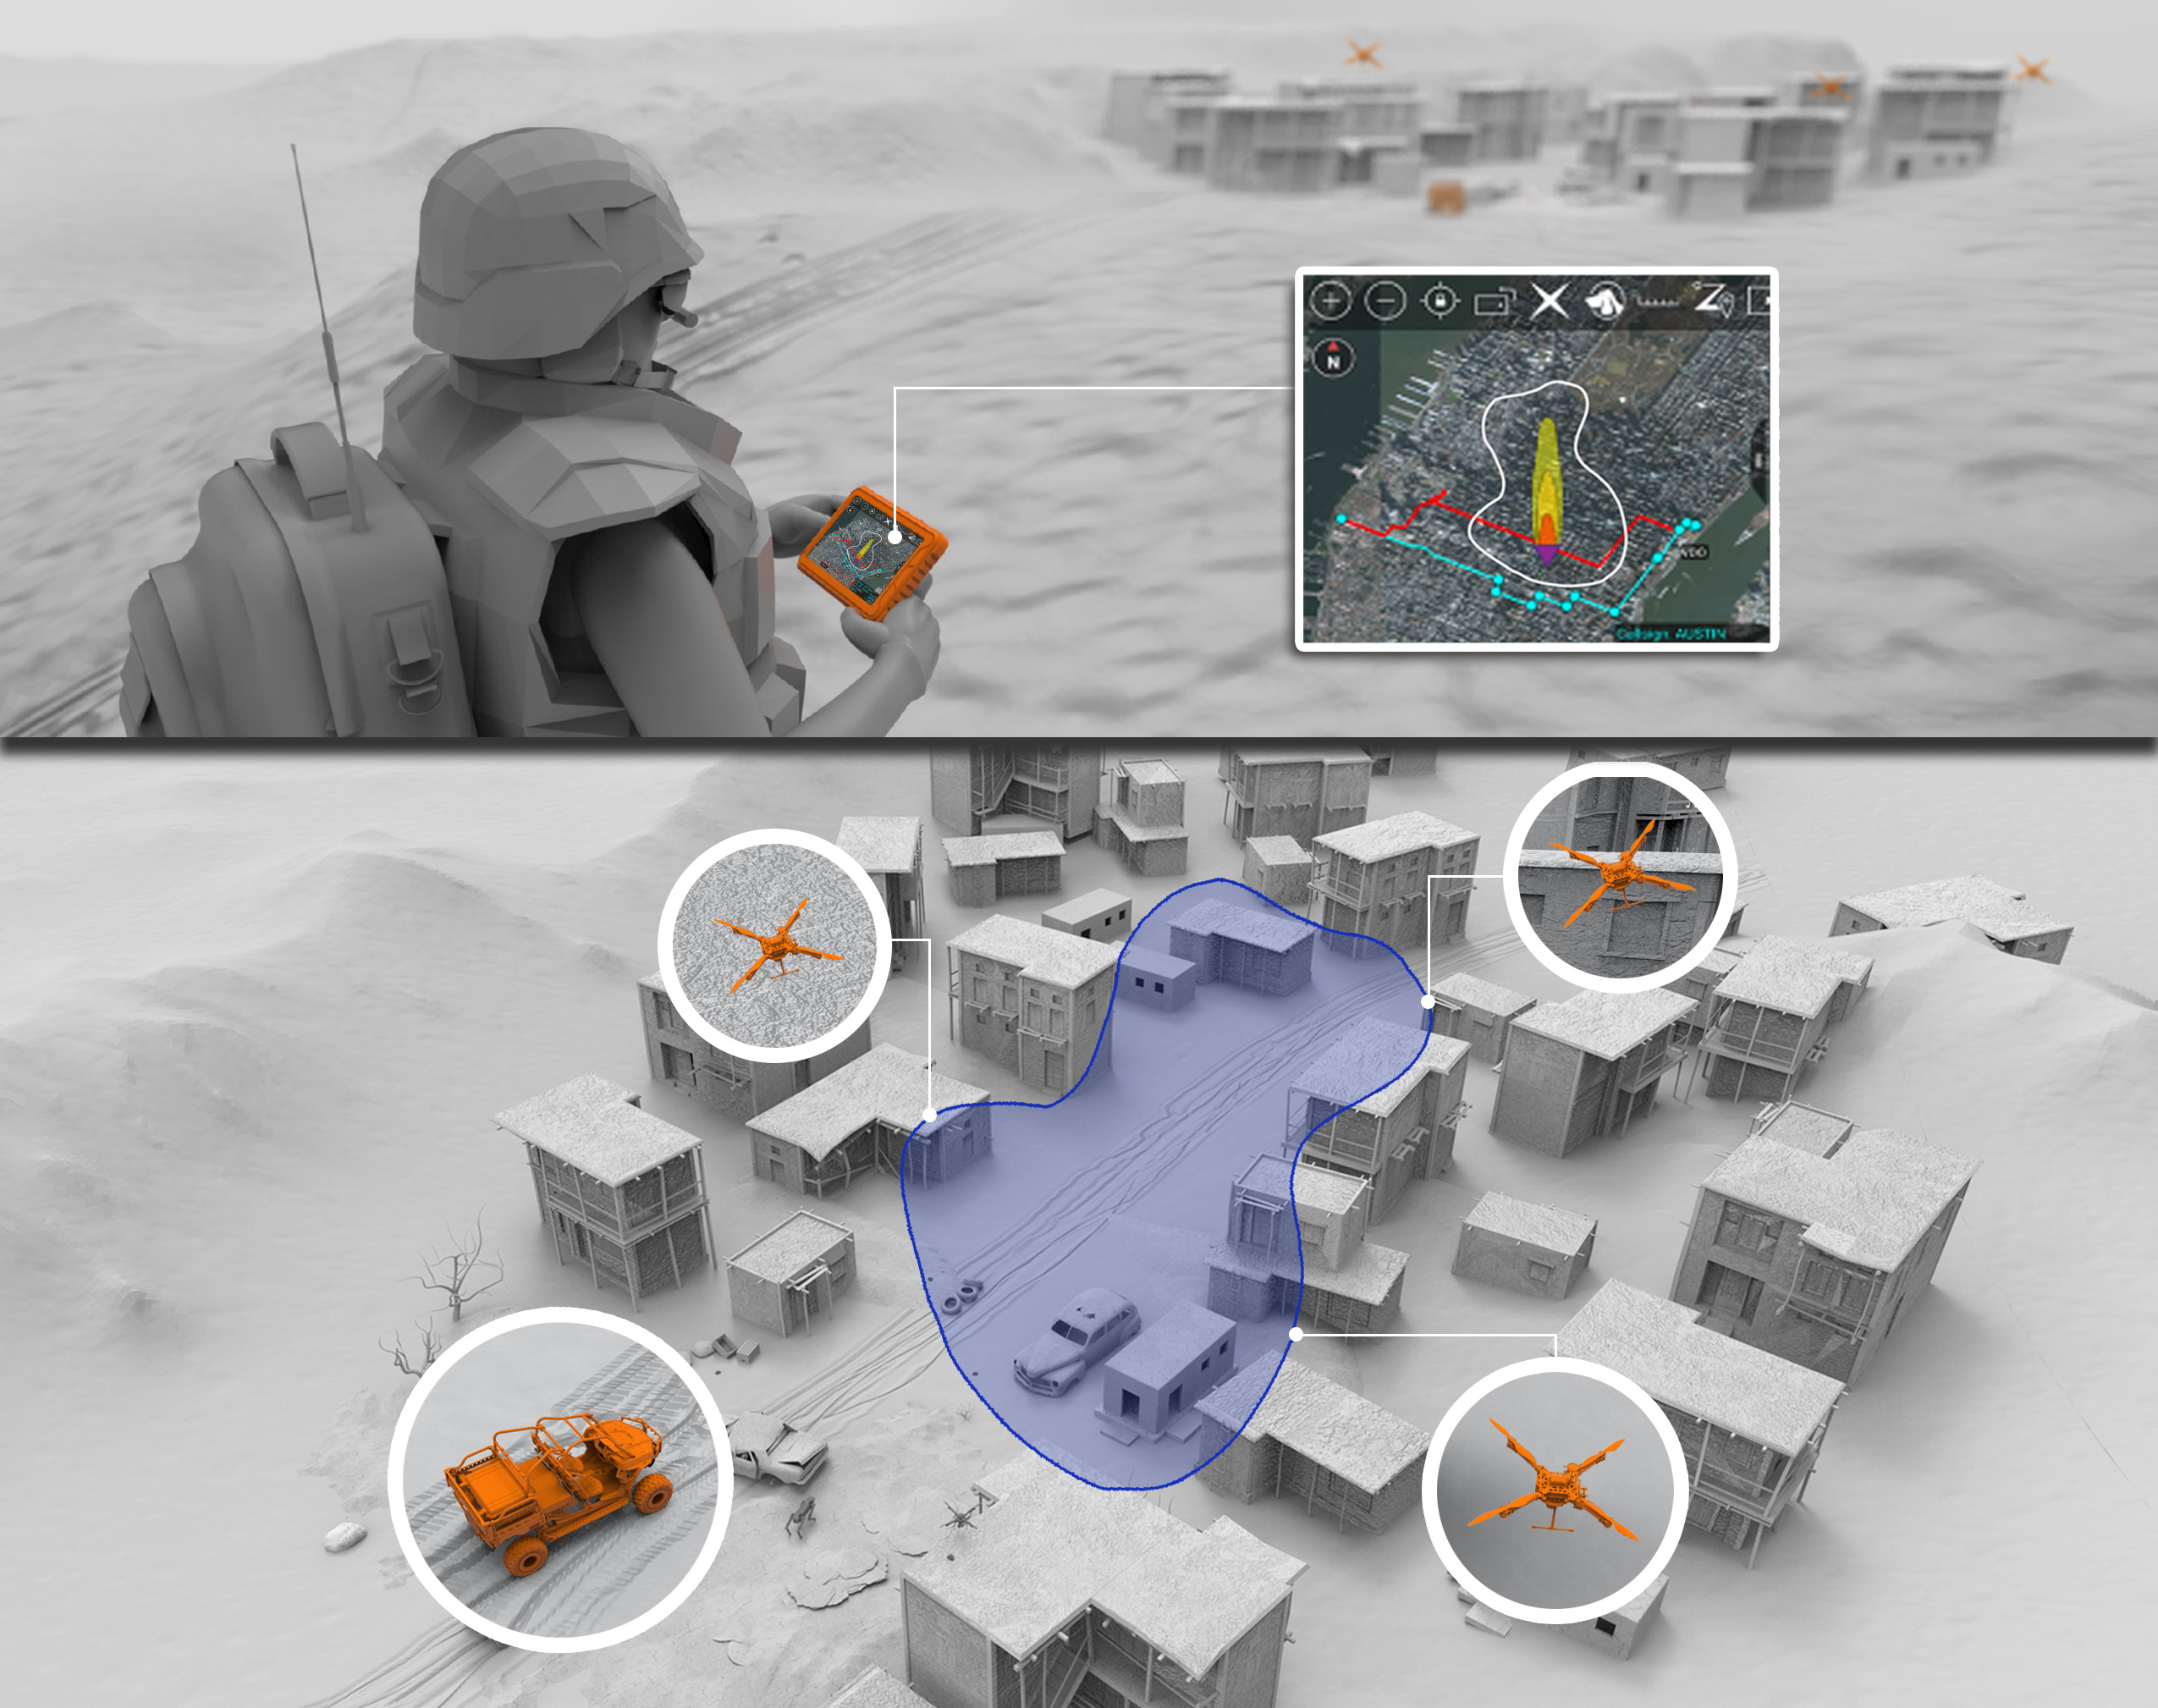 Neya Systems Tapped to Develop U.S. Department of Defense Unmanned Multi-Robot Software Functionality